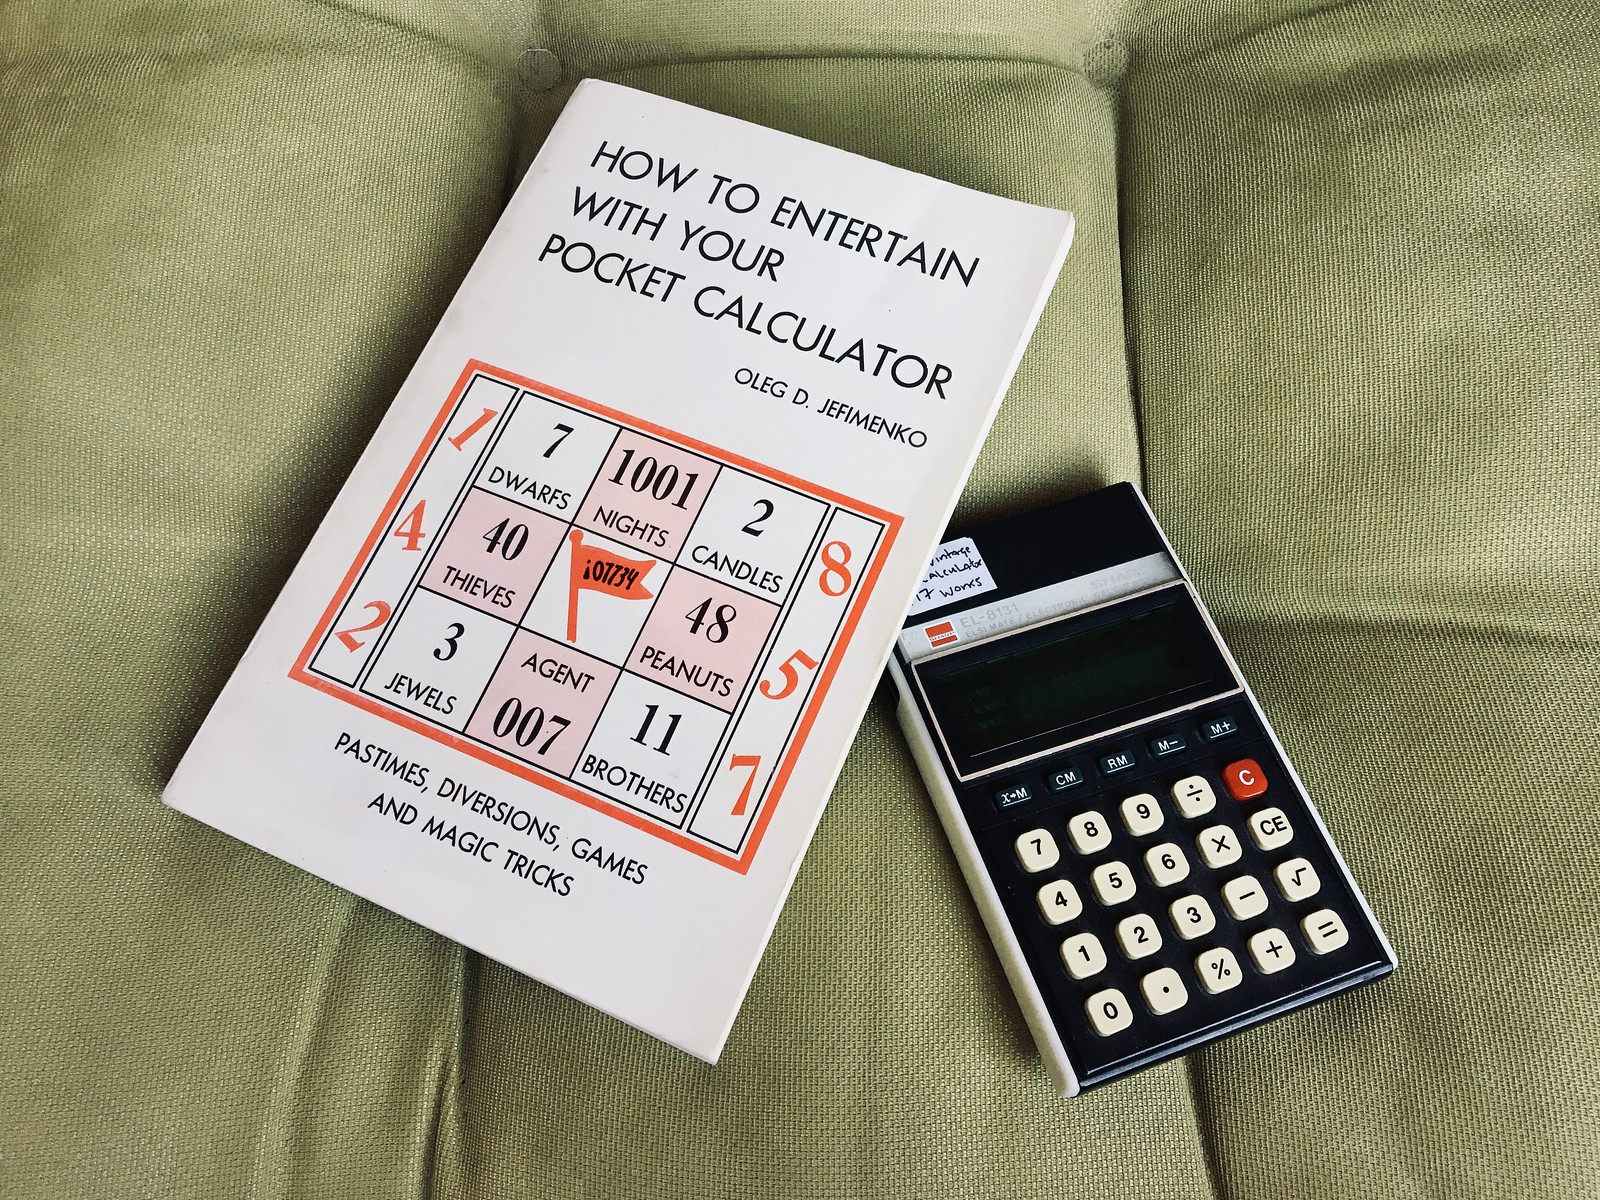 How to Entertain With Your Pocket Calculator